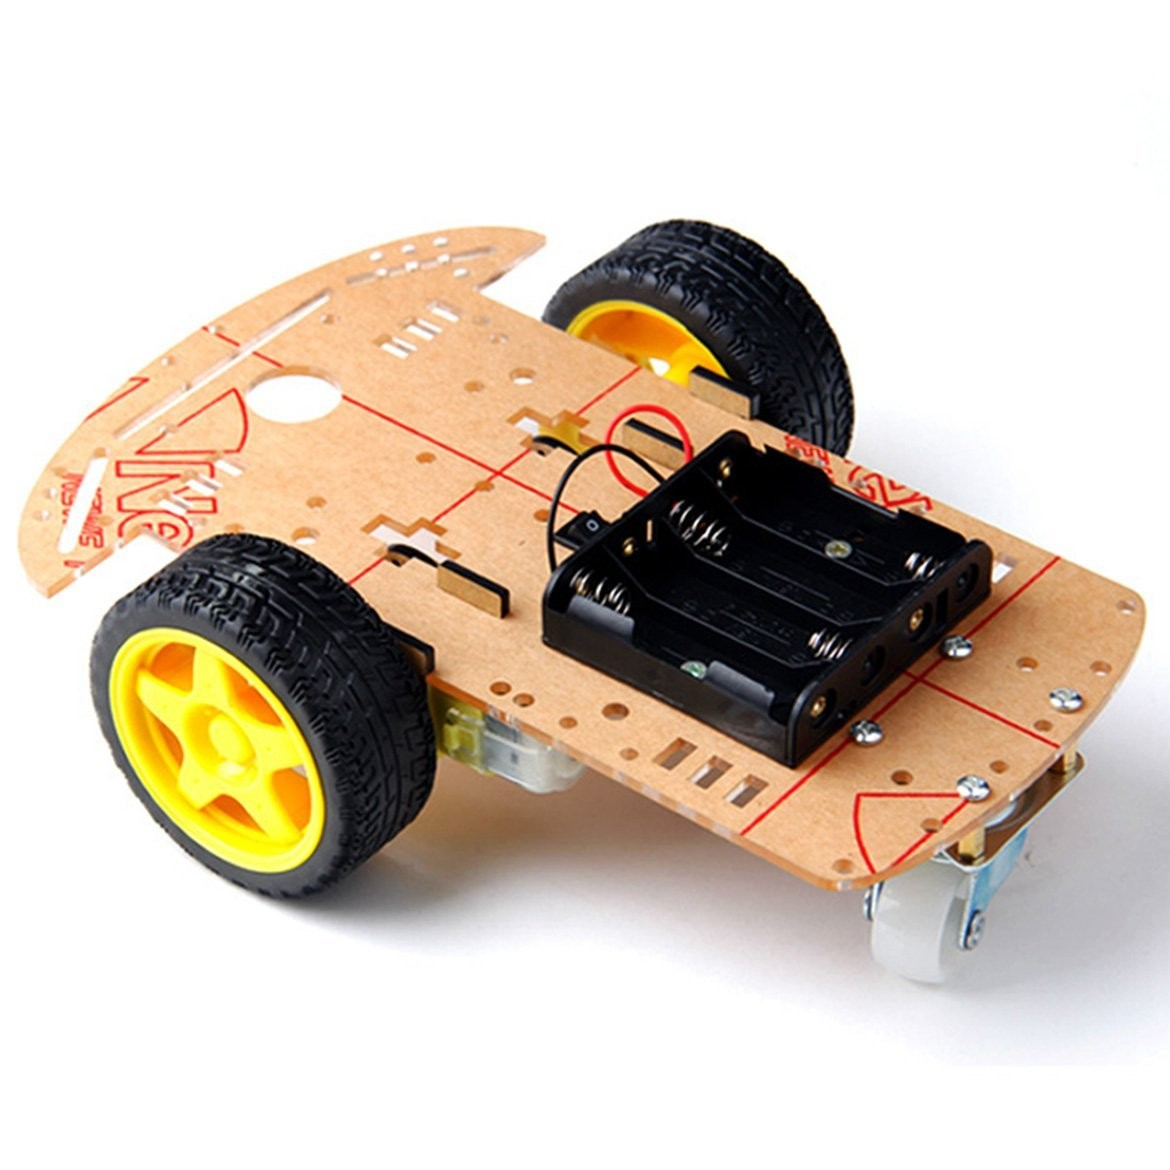 Sainsmart wd smart car chassis kit d printing arduino